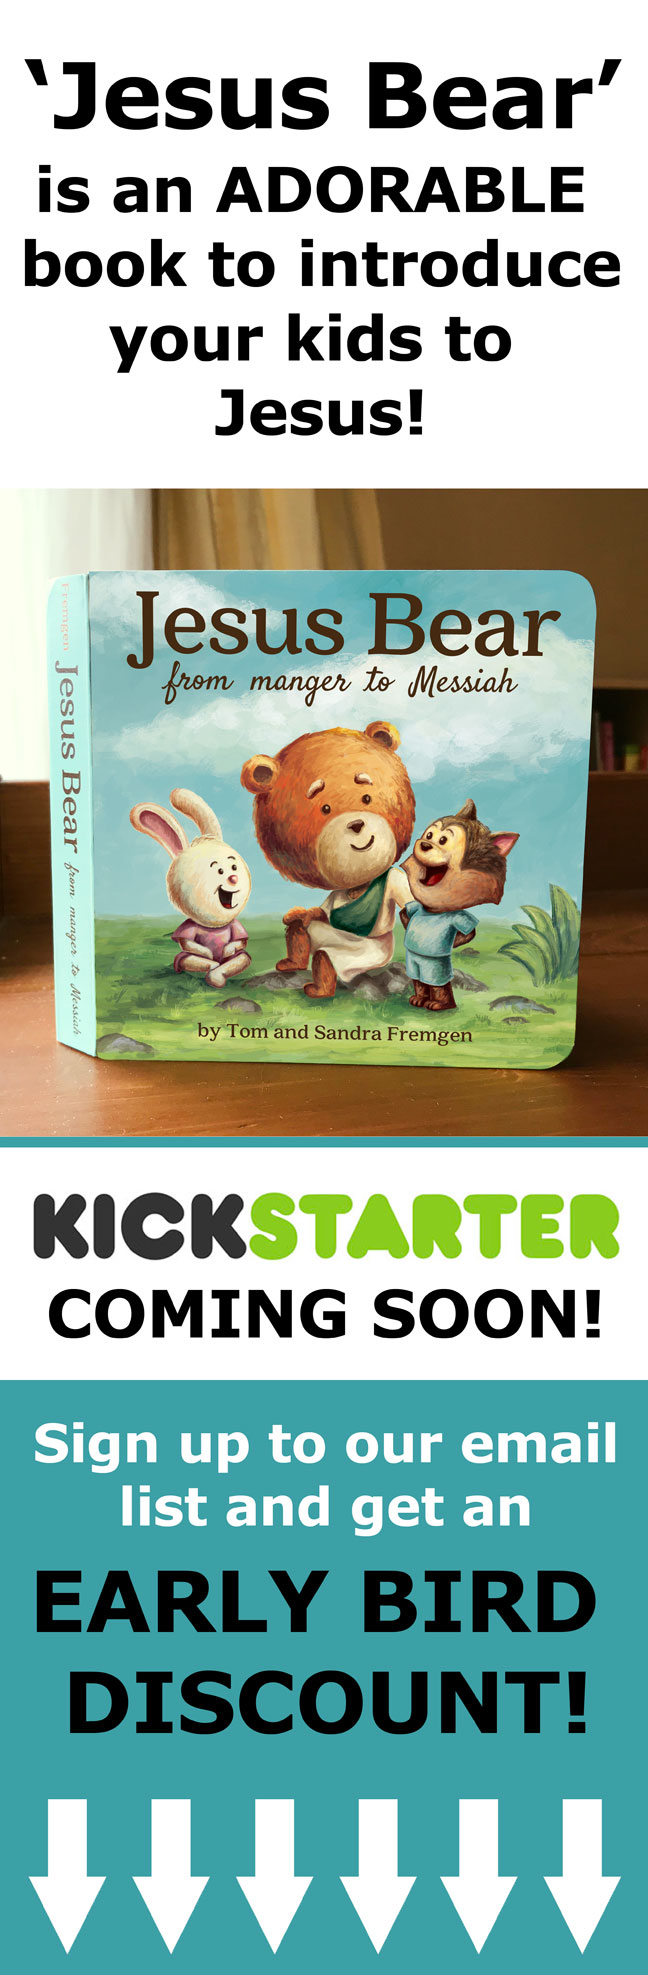 Jesus-Bear-book-cover-with-text.jpg